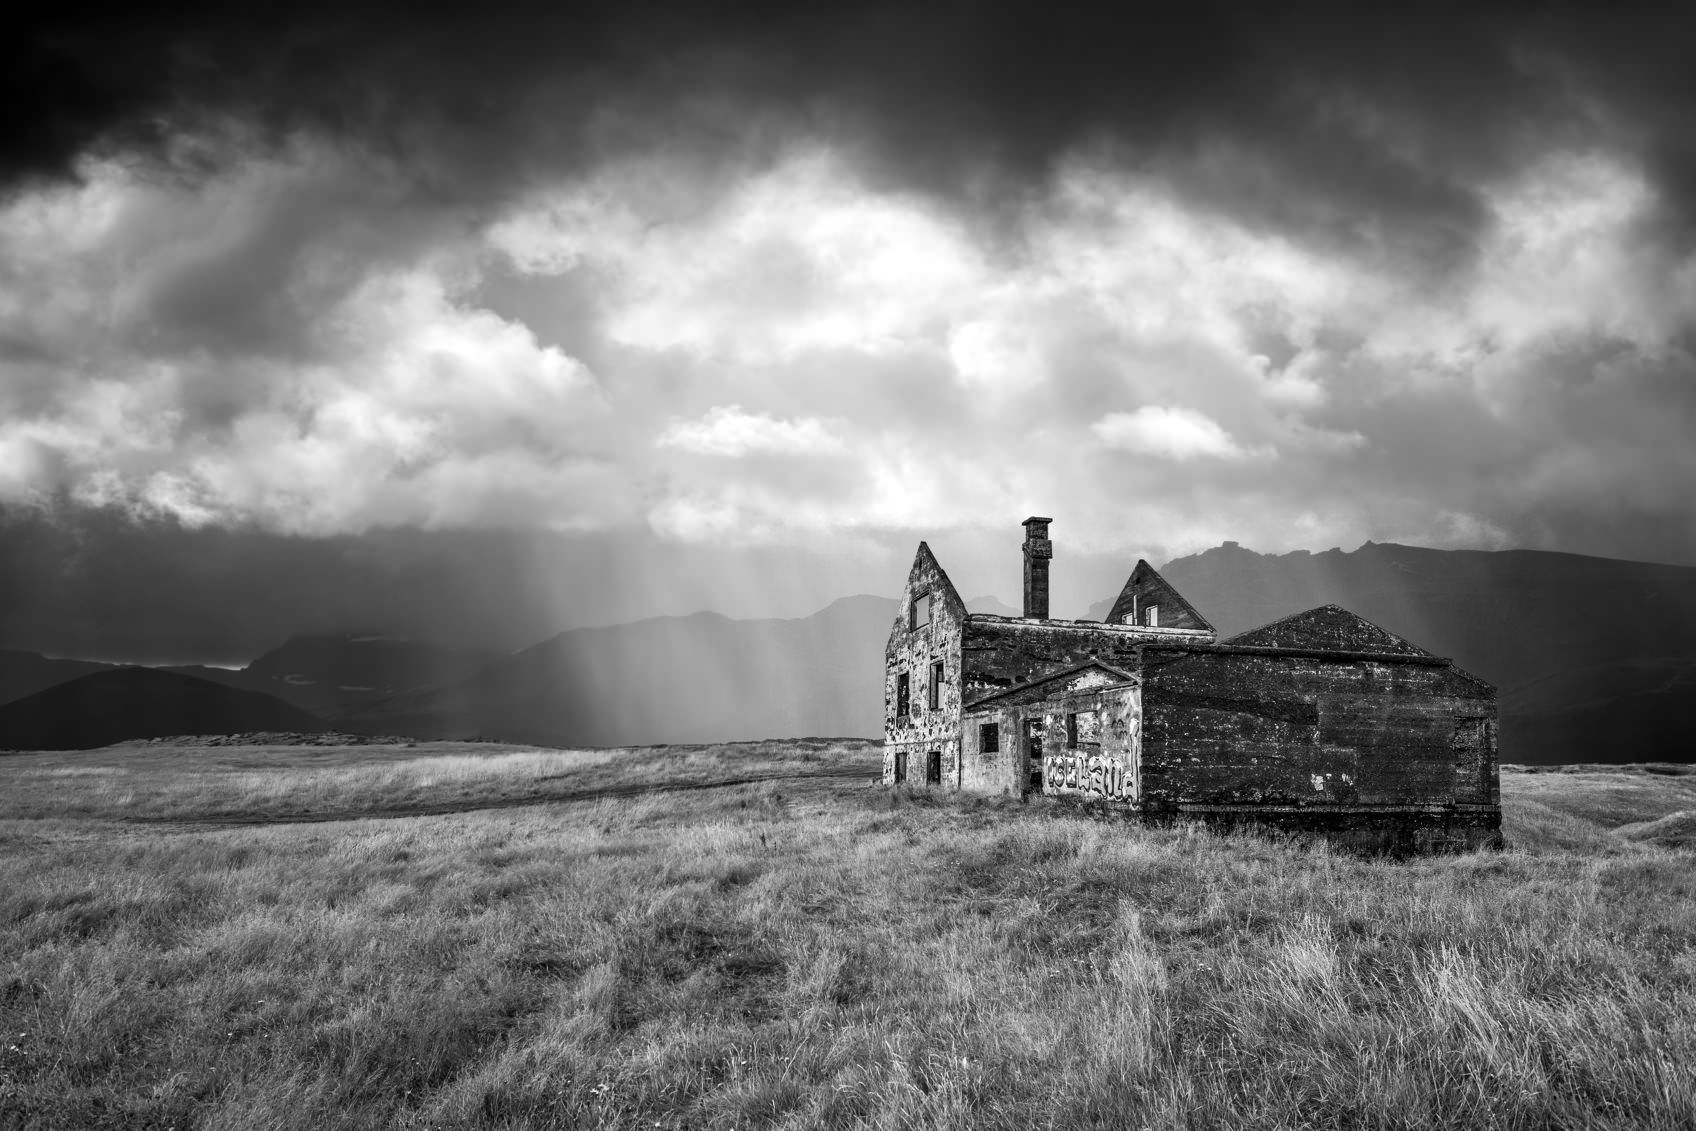 Transform Daytime Photos Into Black & White Masterpieces in 5 Easy Steps